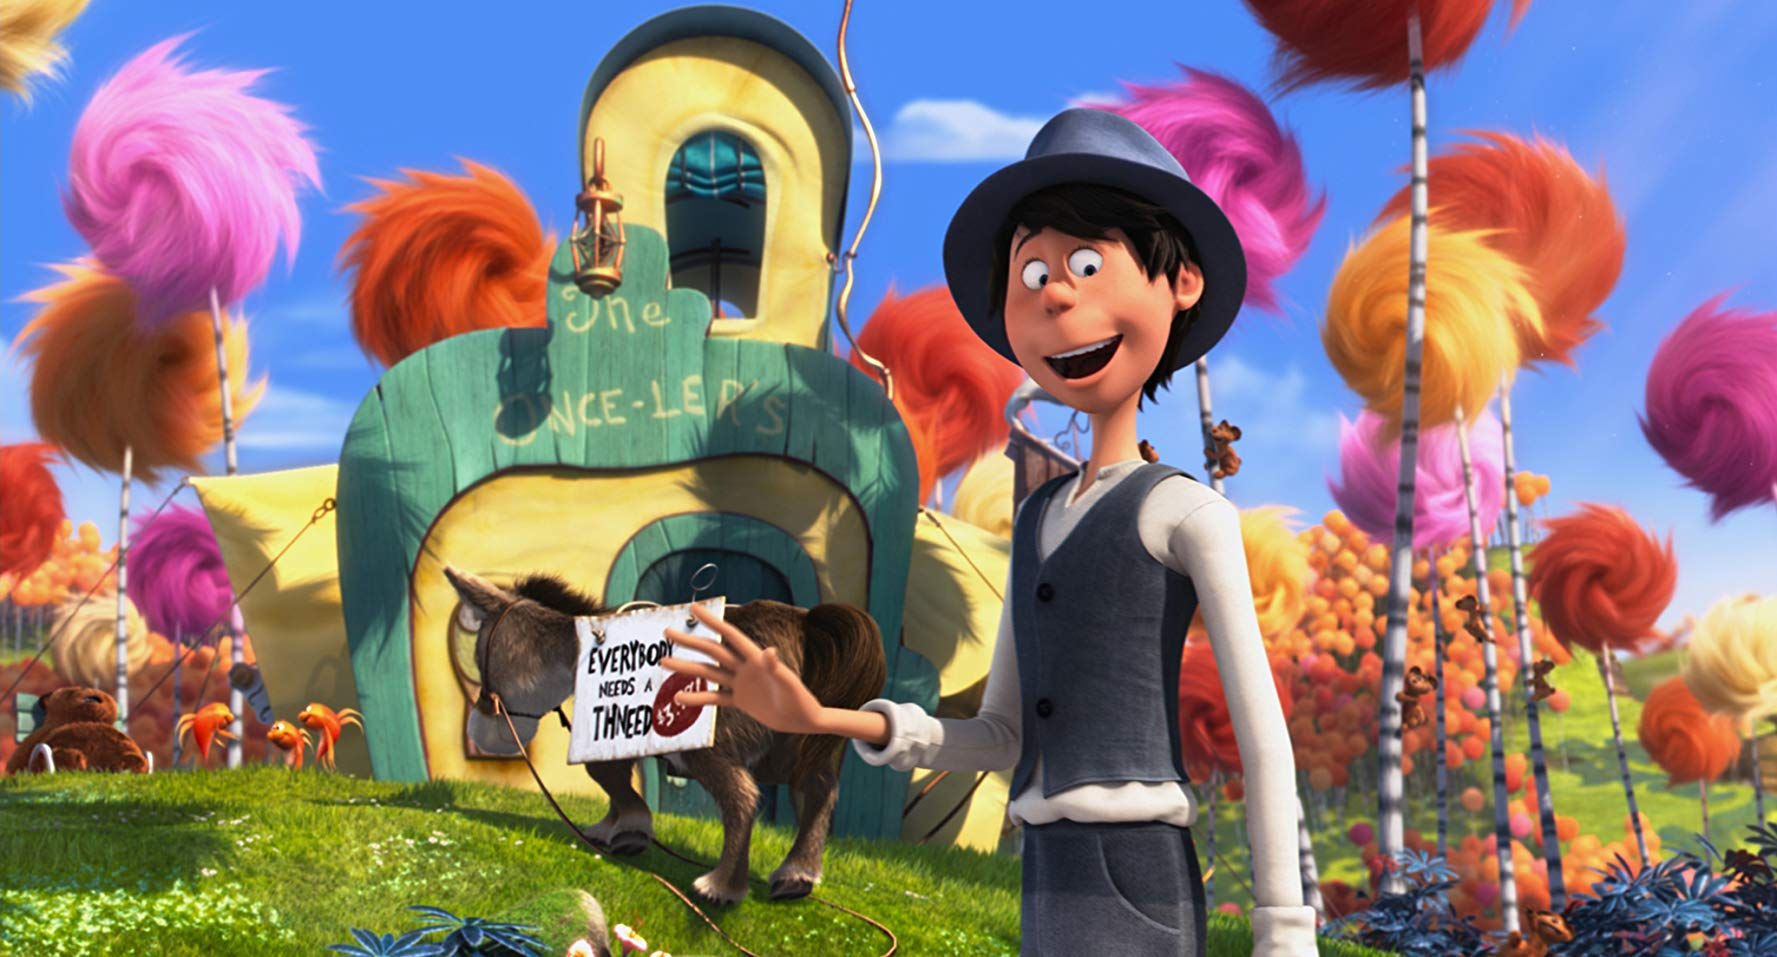 Ted Wiggins (voiced by Zac Efron) heads off to find the Once-ler in The Lorax (2012)